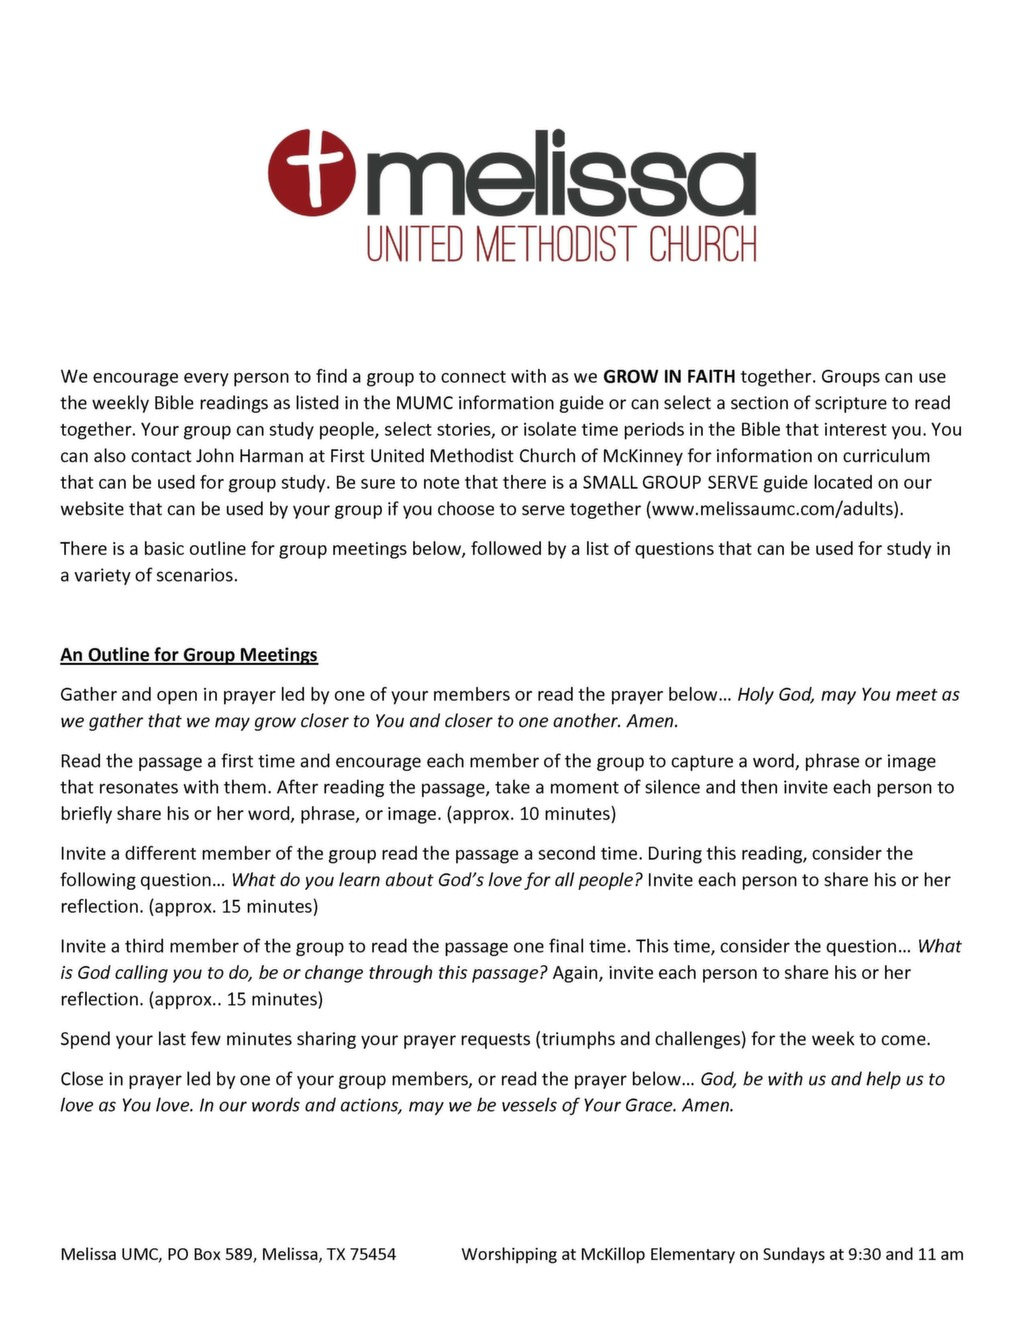 Small Group Discussion Guide Template Melissa United